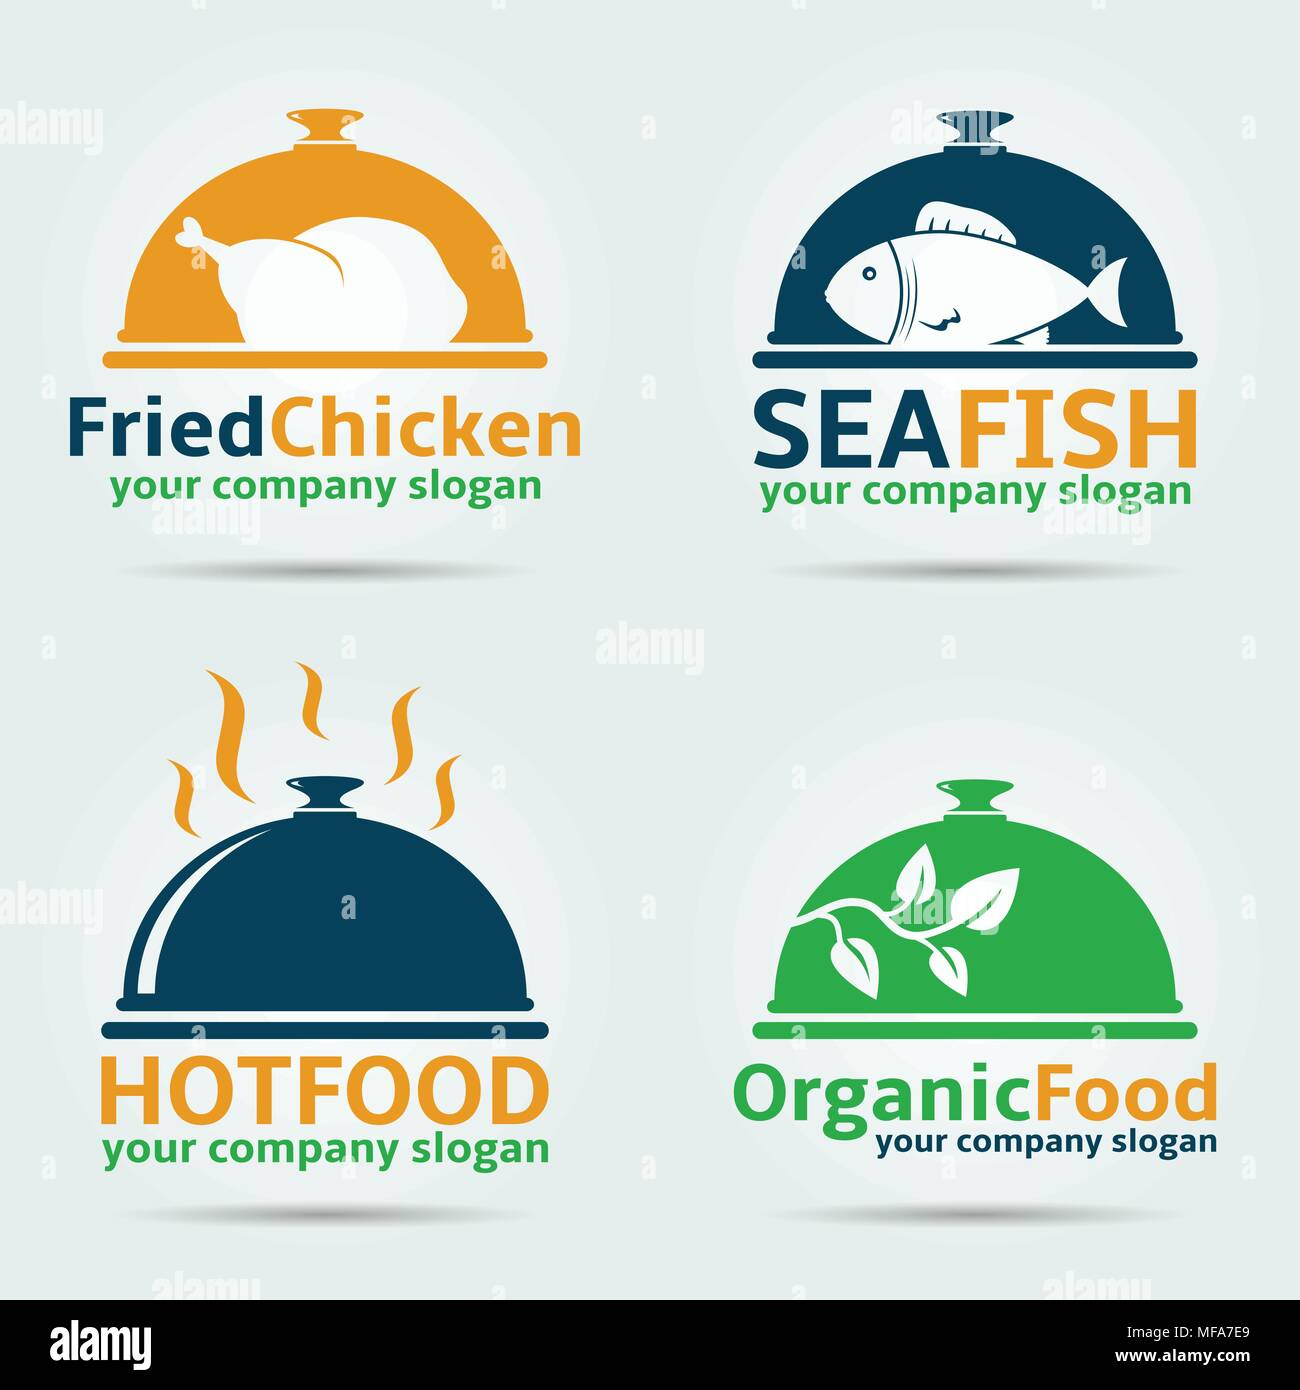 Chicken Logo Vector Stockfotos & Chicken Logo Vector Bilder - Alamy